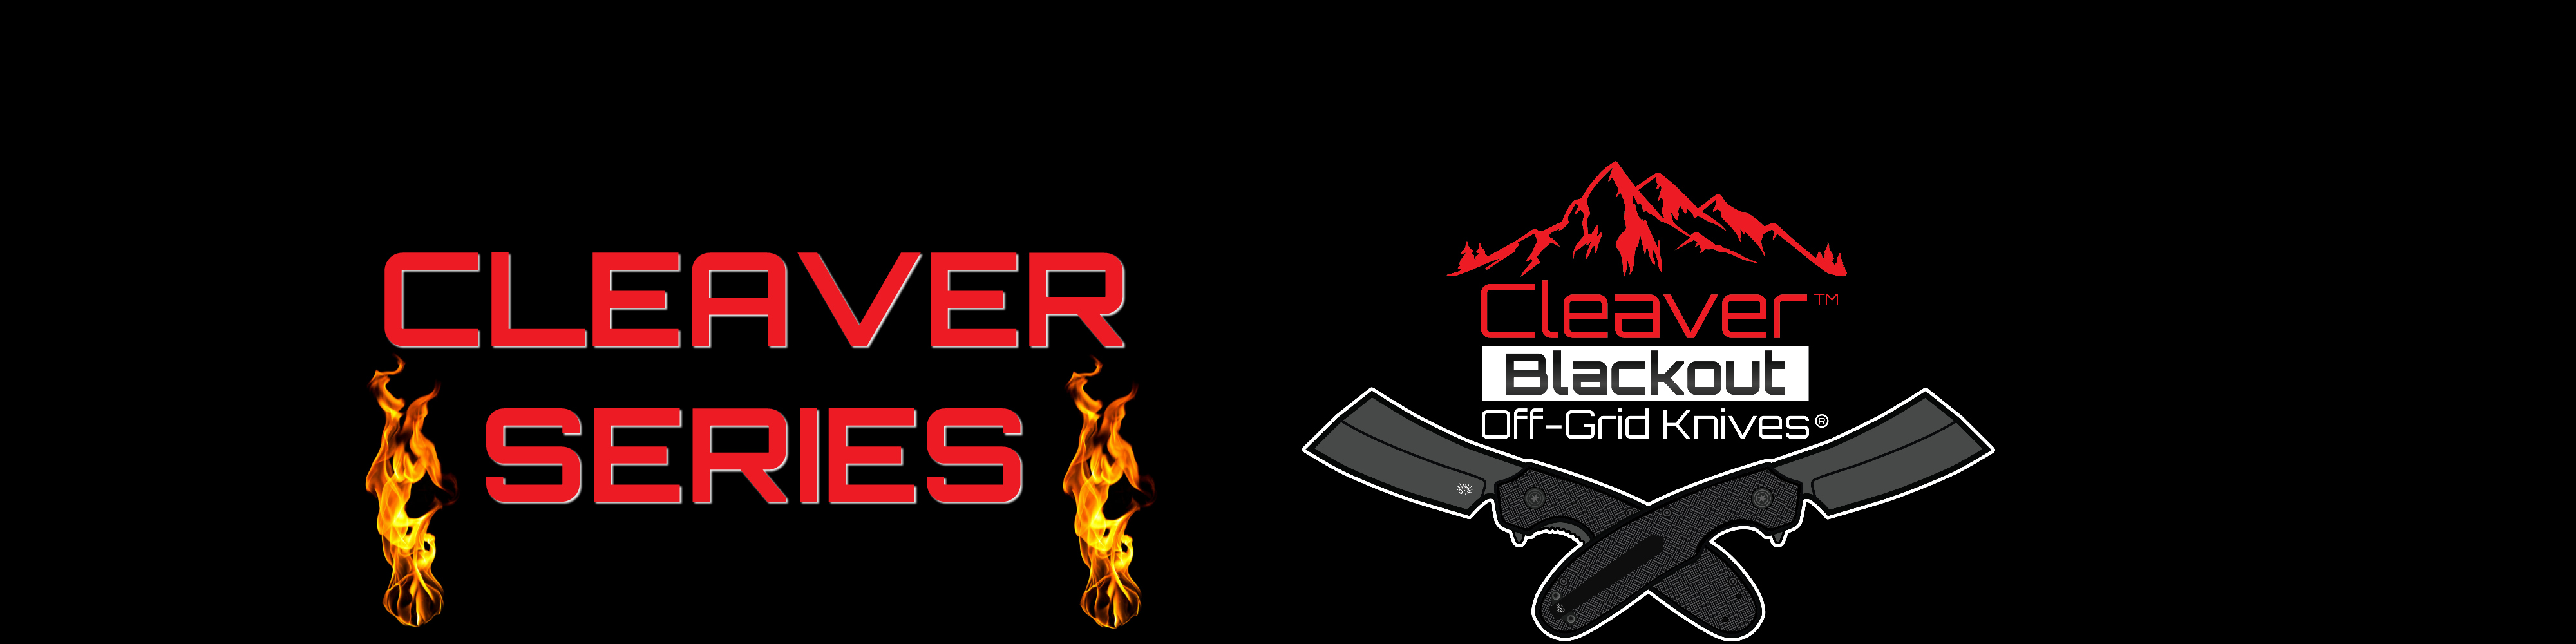 new-banner-website-cleaver-4000x1000.jpg